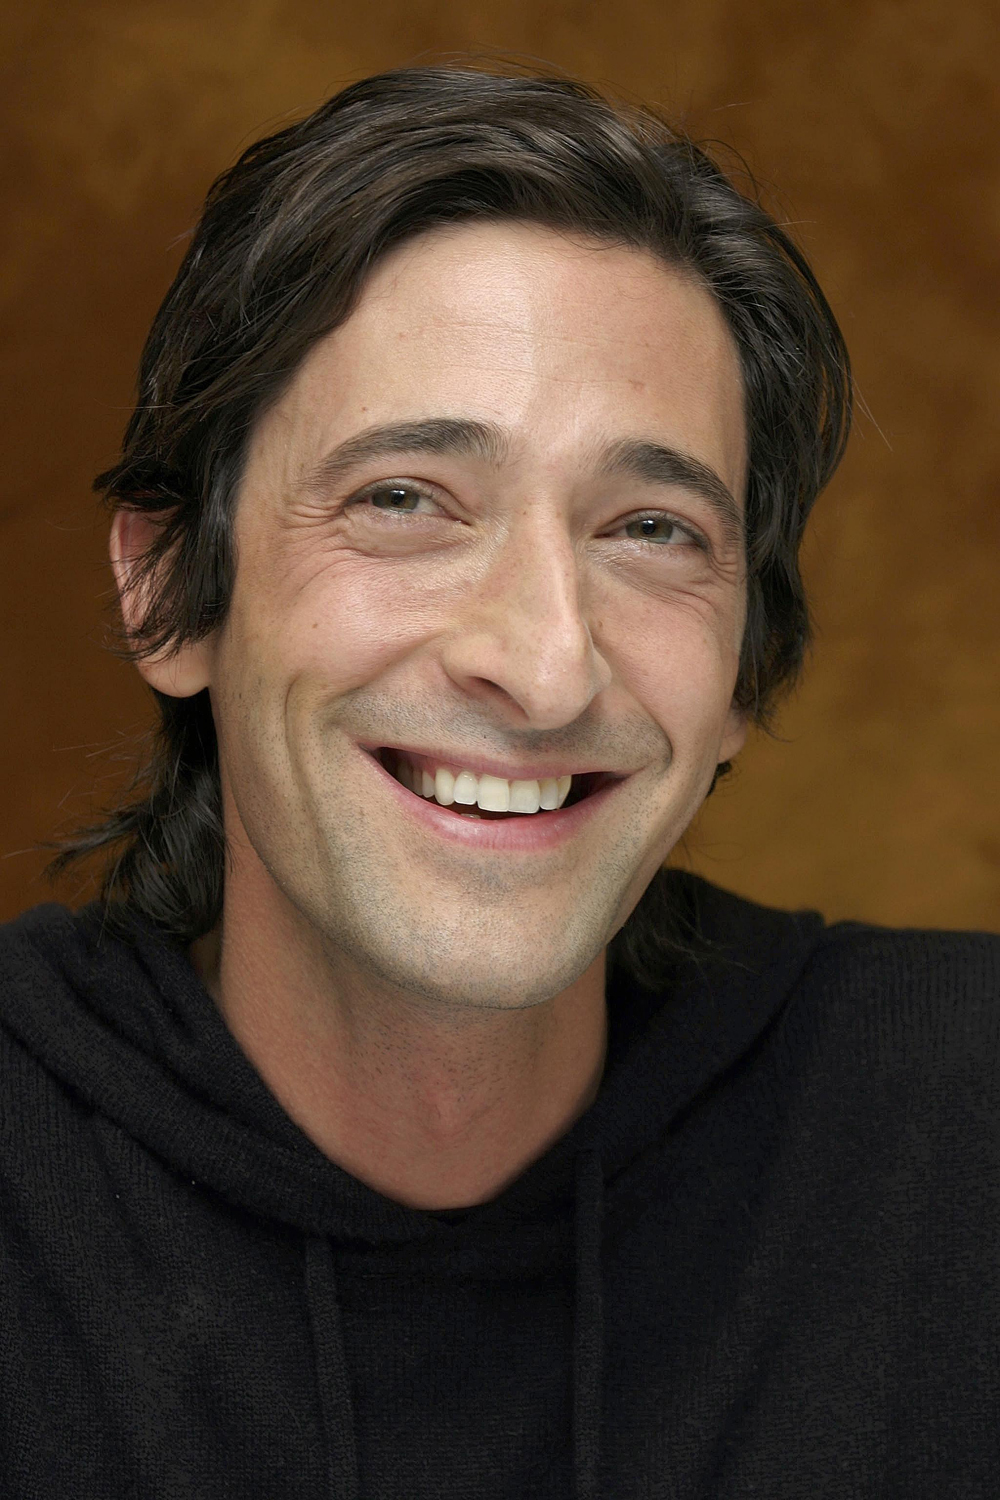 Adrien Brody Photo Session